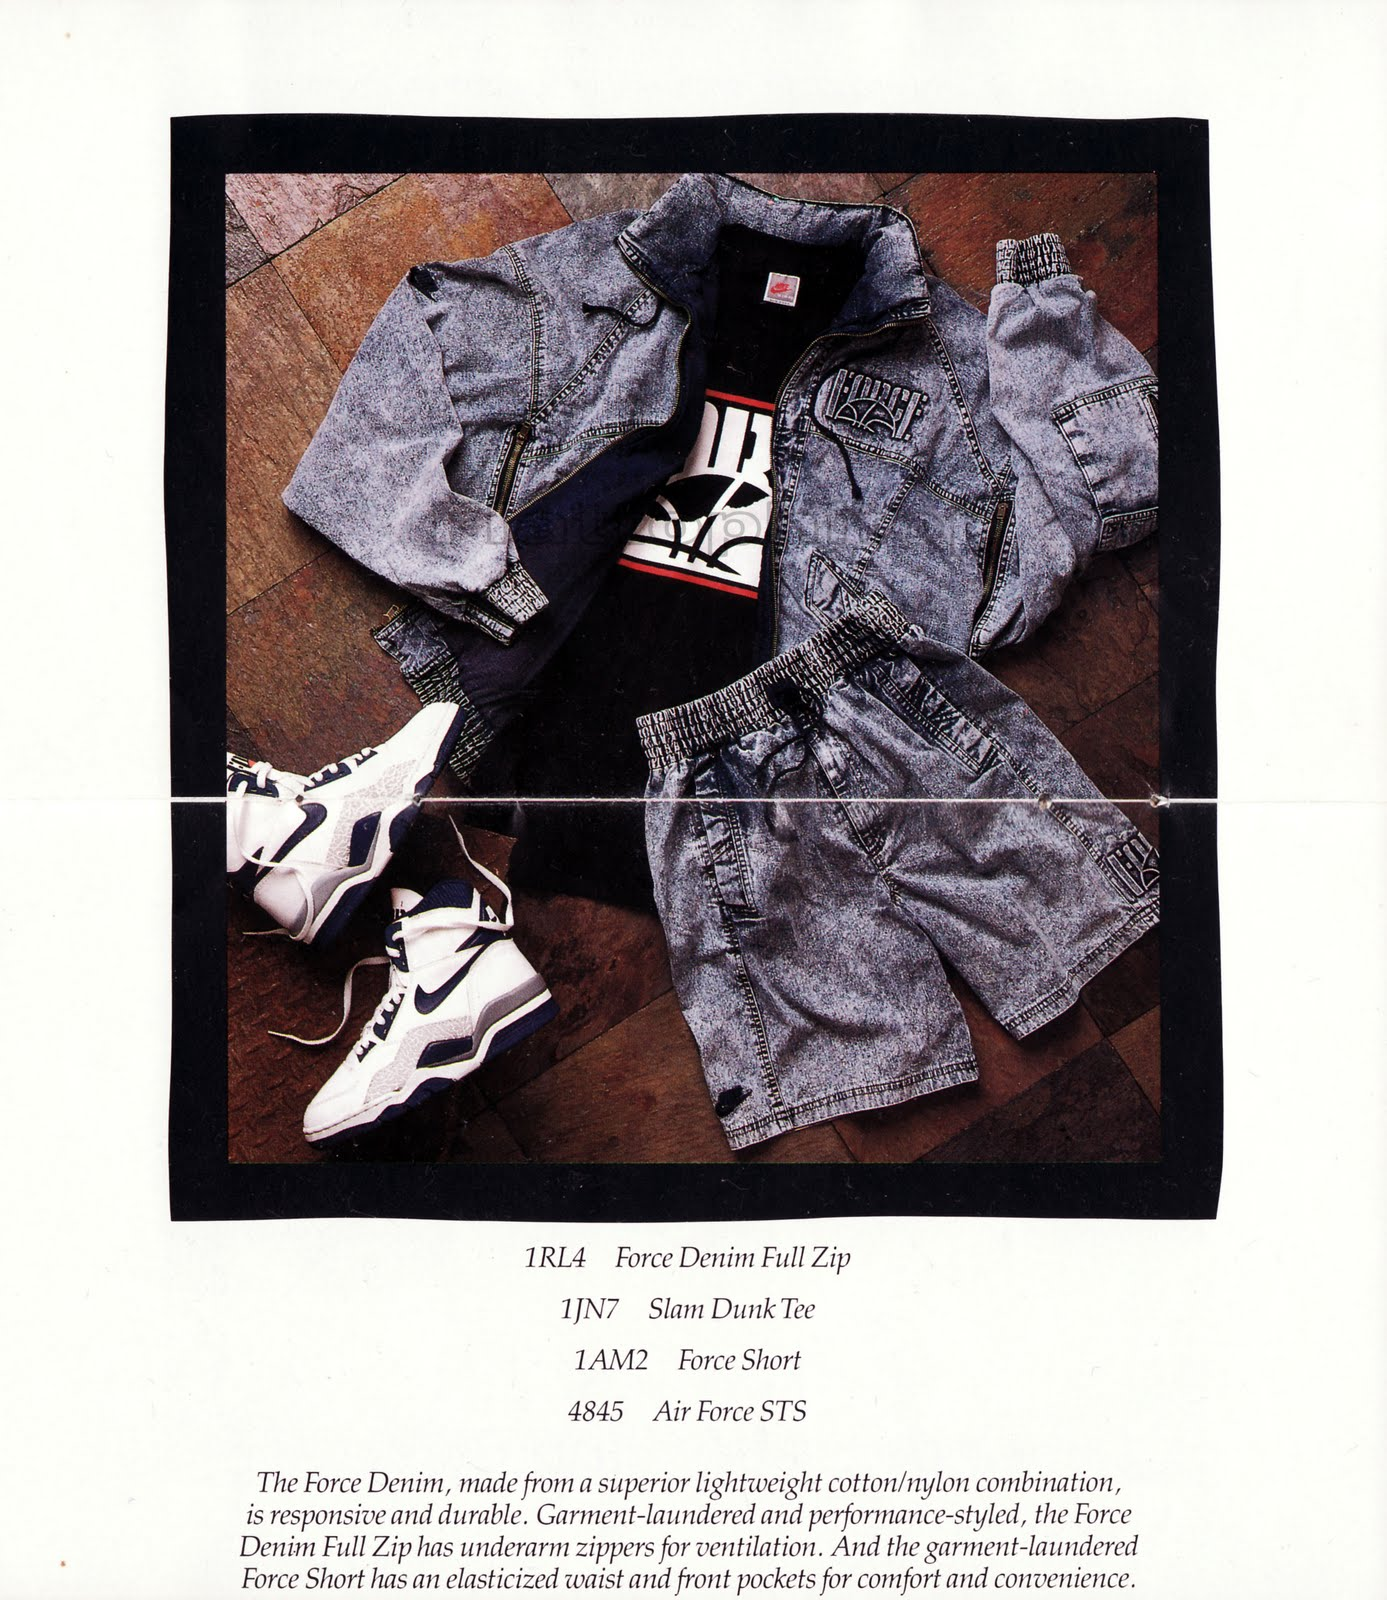 reputable site 87a0f cb8c9 NIKE BASKETBALL CATALOG (1990)